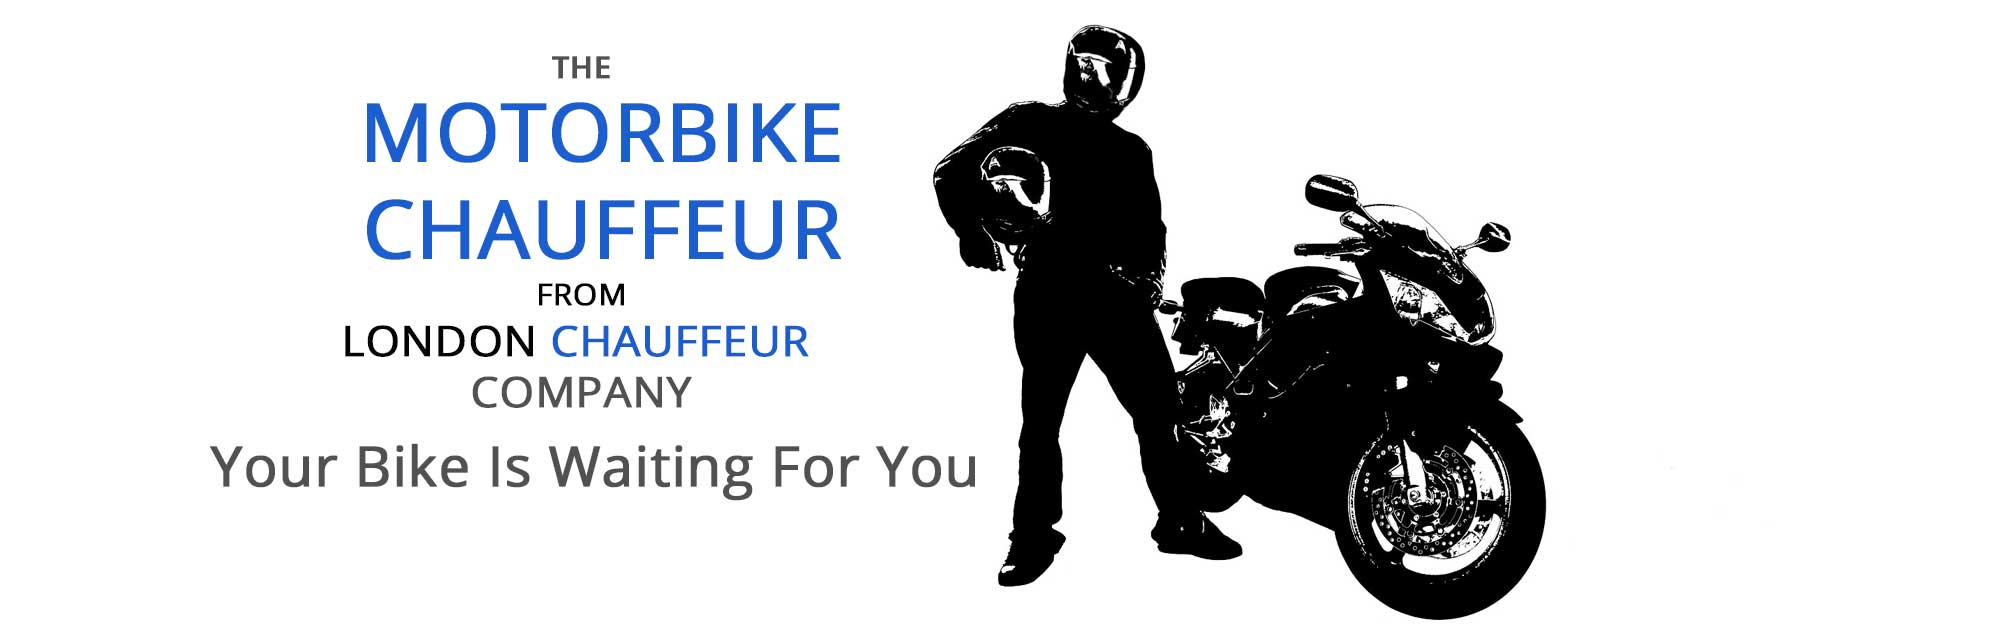 motorbike-chauffeur-london